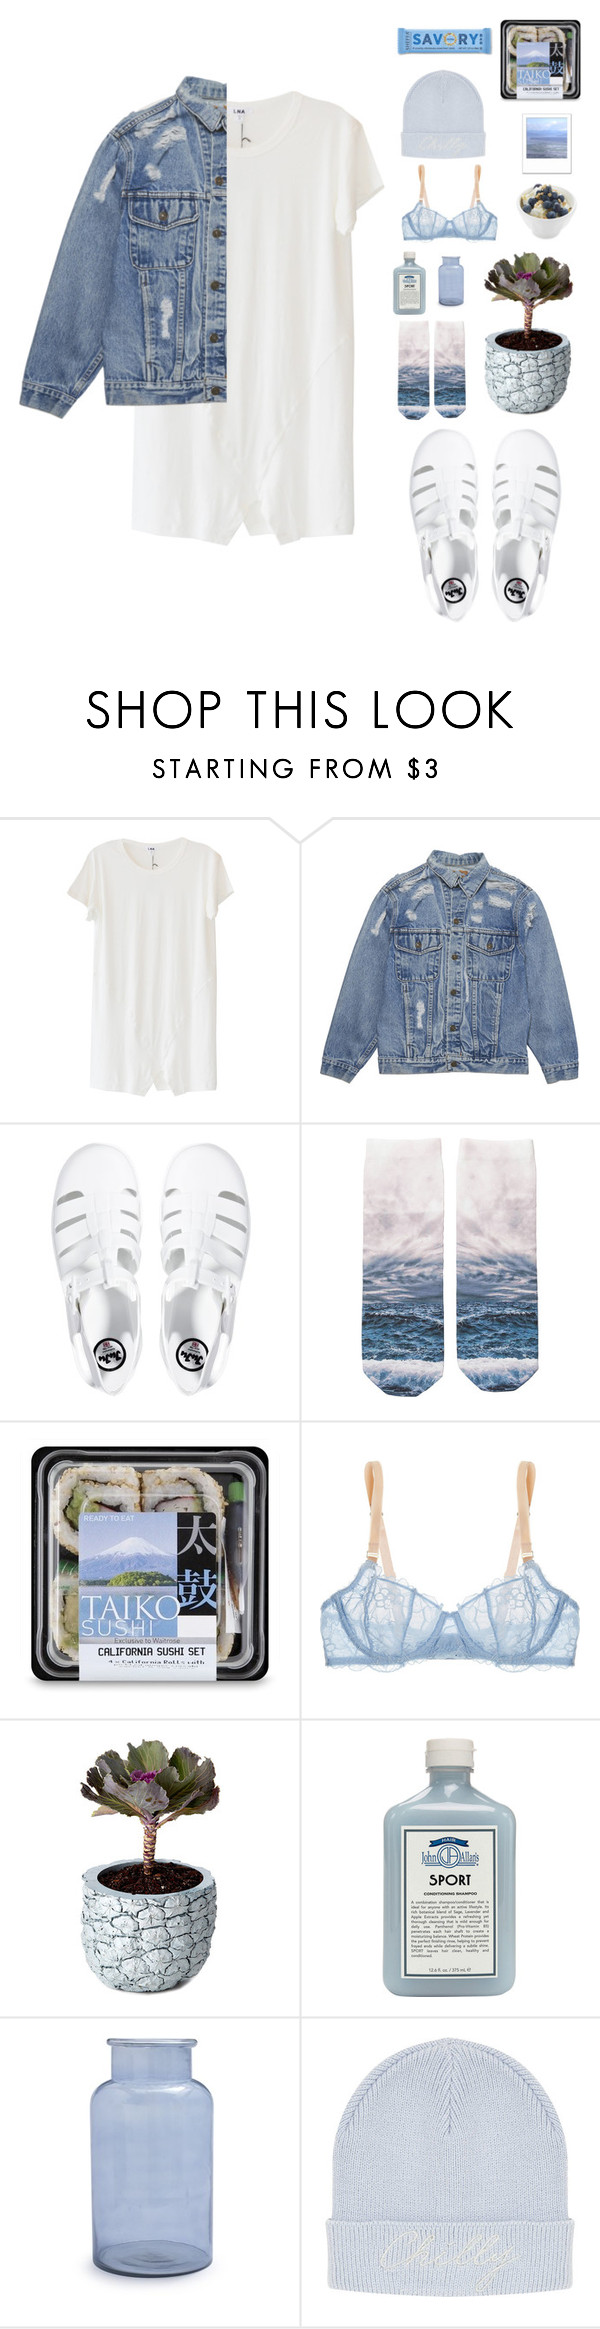 """""""You love the game"""" by blood-under-the-skin ❤ liked on Polyvore featuring LnA, JuJu, Monki, STELLA McCARTNEY, Chen Chen & Kai Williams, John Allan's, Sur La Table, Polaroid and Topshop"""